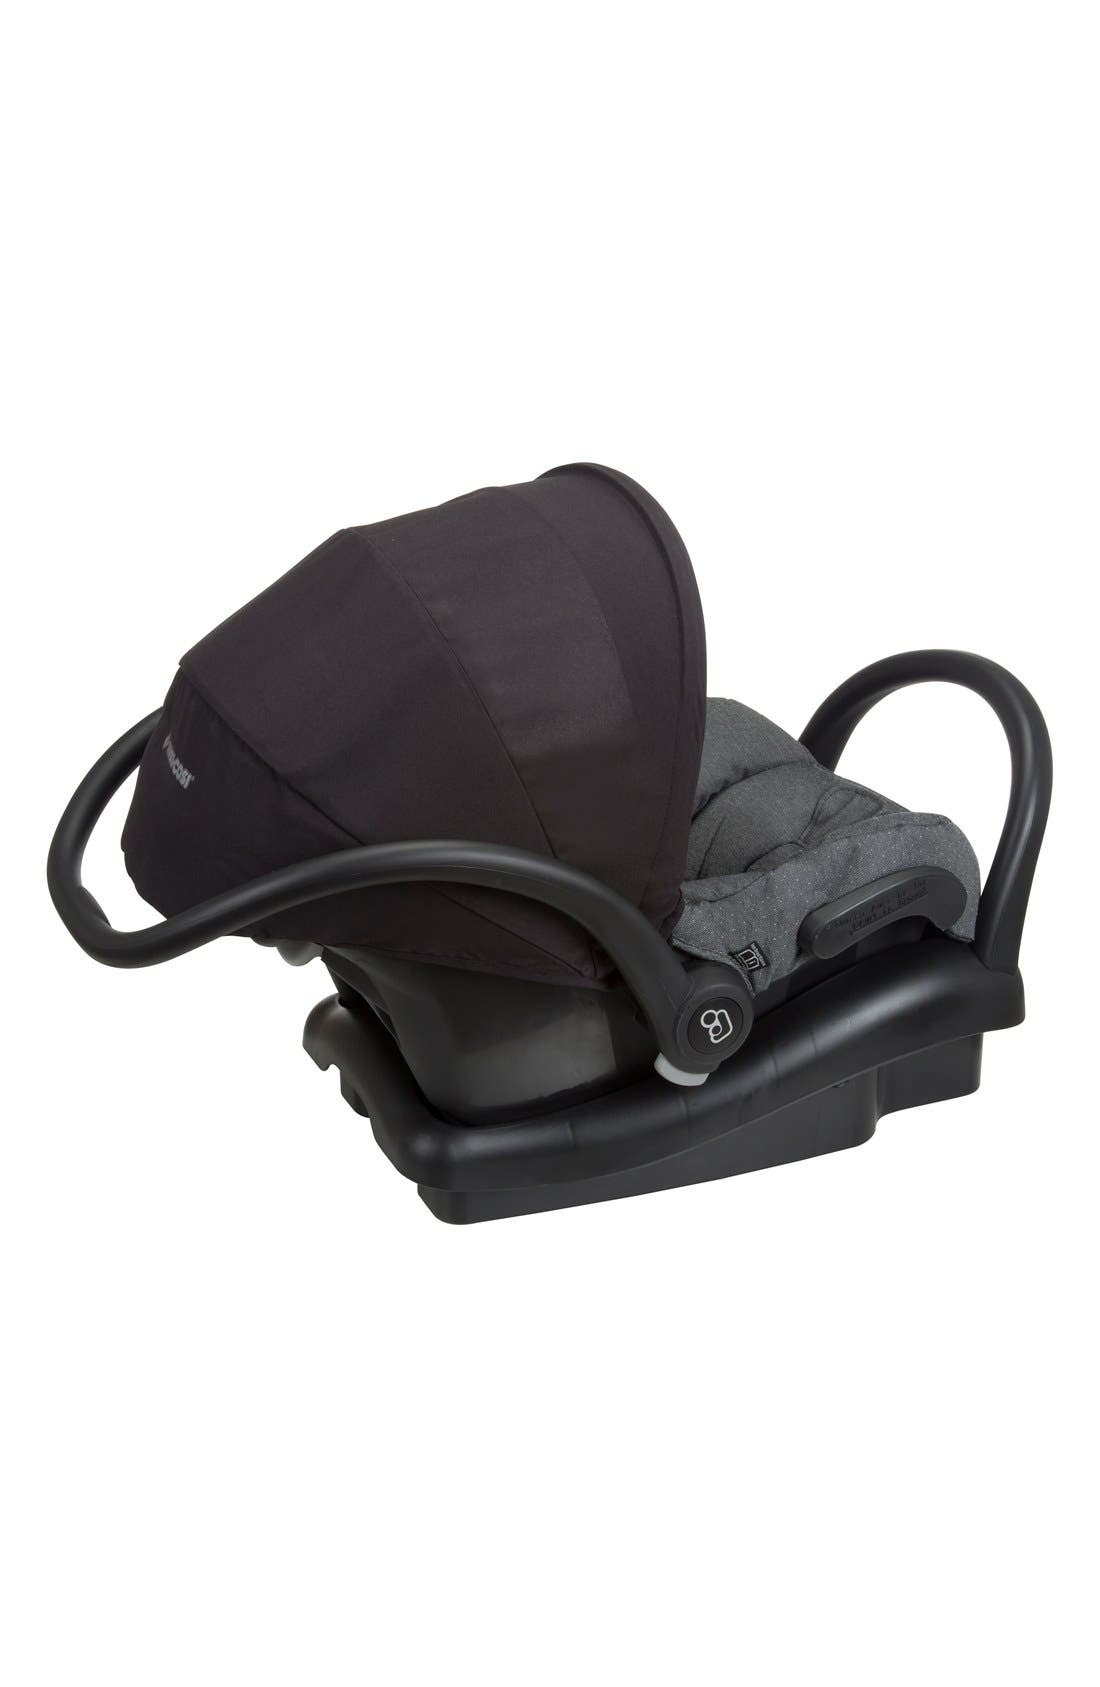 'Mico Max 30 Special Edition' Car Seat,                             Alternate thumbnail 4, color,                             027